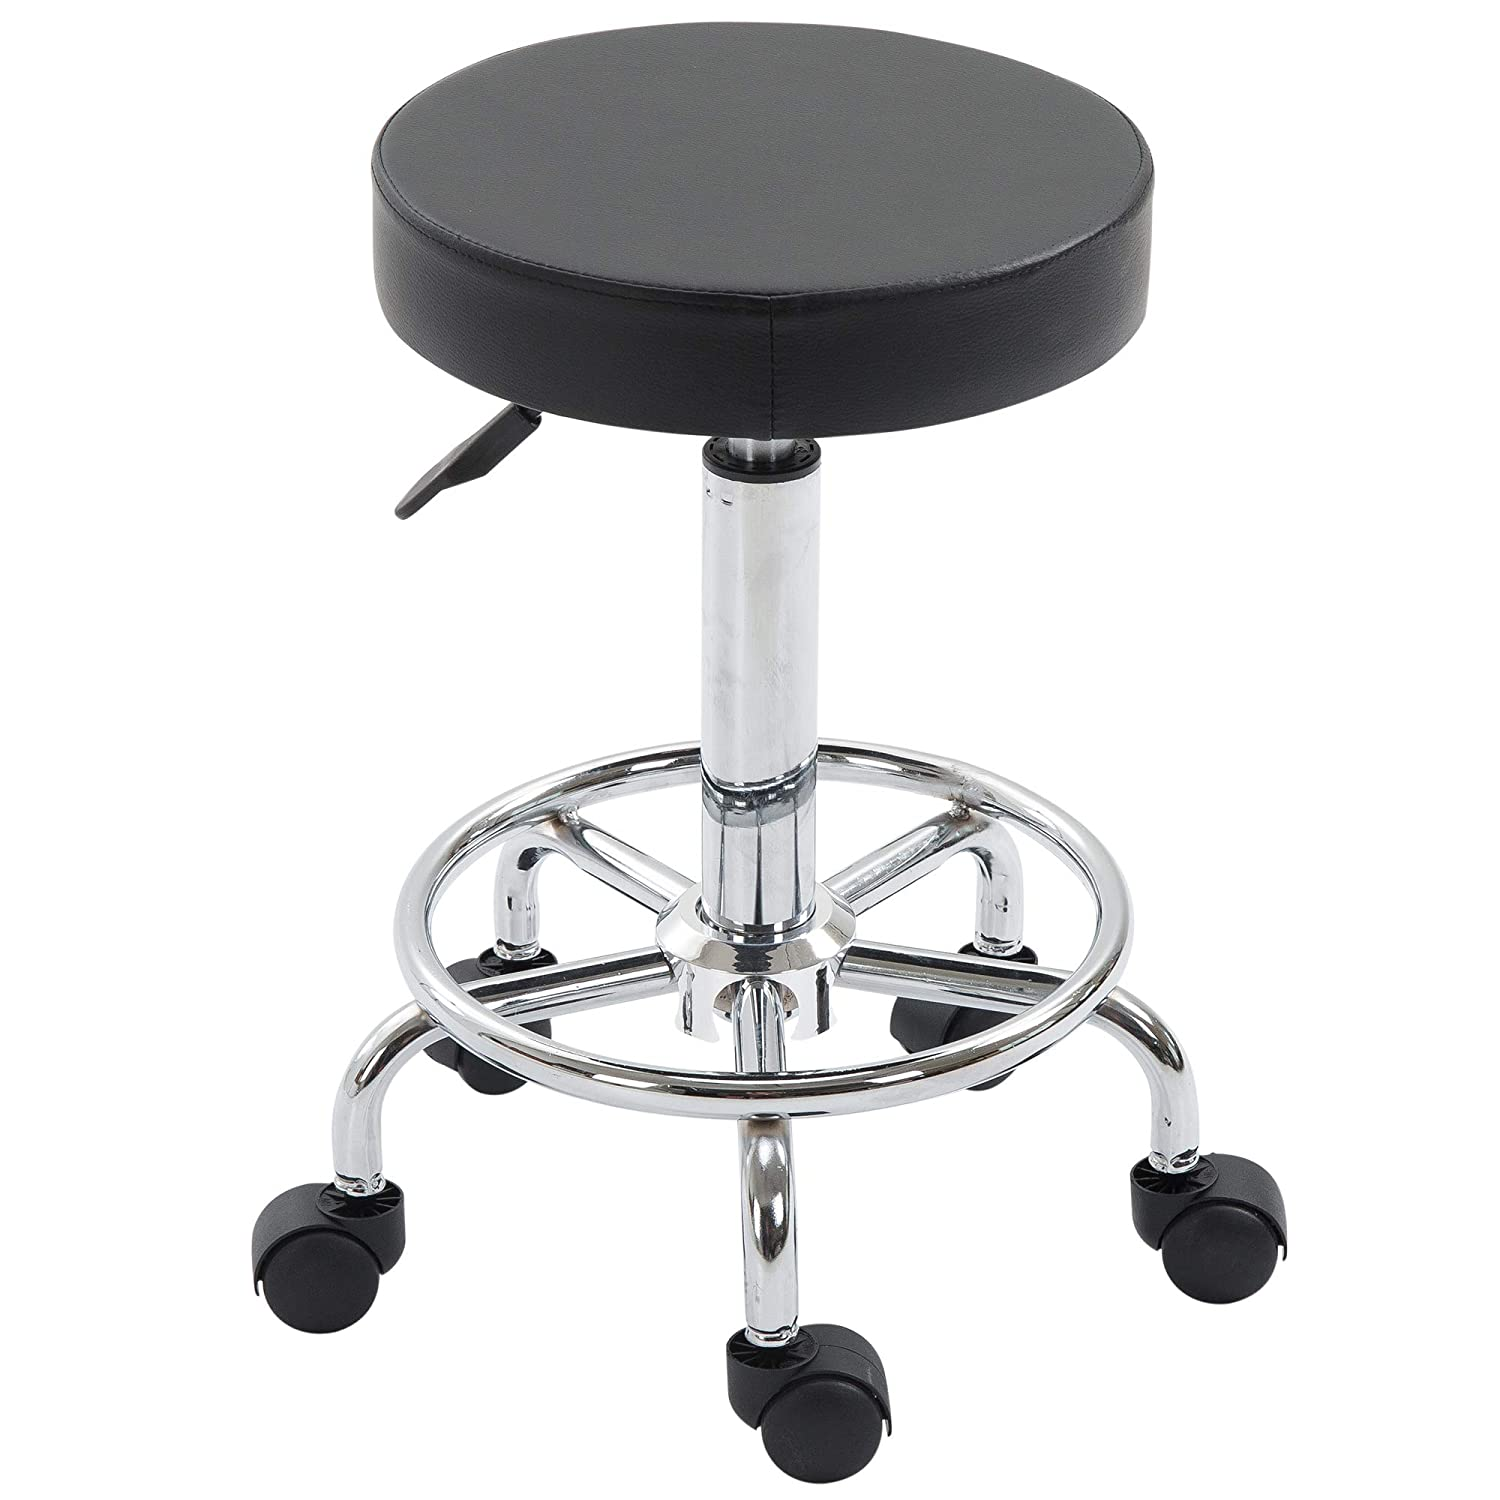 Adjustable Swivel Salon Stool Hydraulic PU Barber Rolling Massage Tattoo Chair Bar Beauty SPA Seat Black Aosom Canada